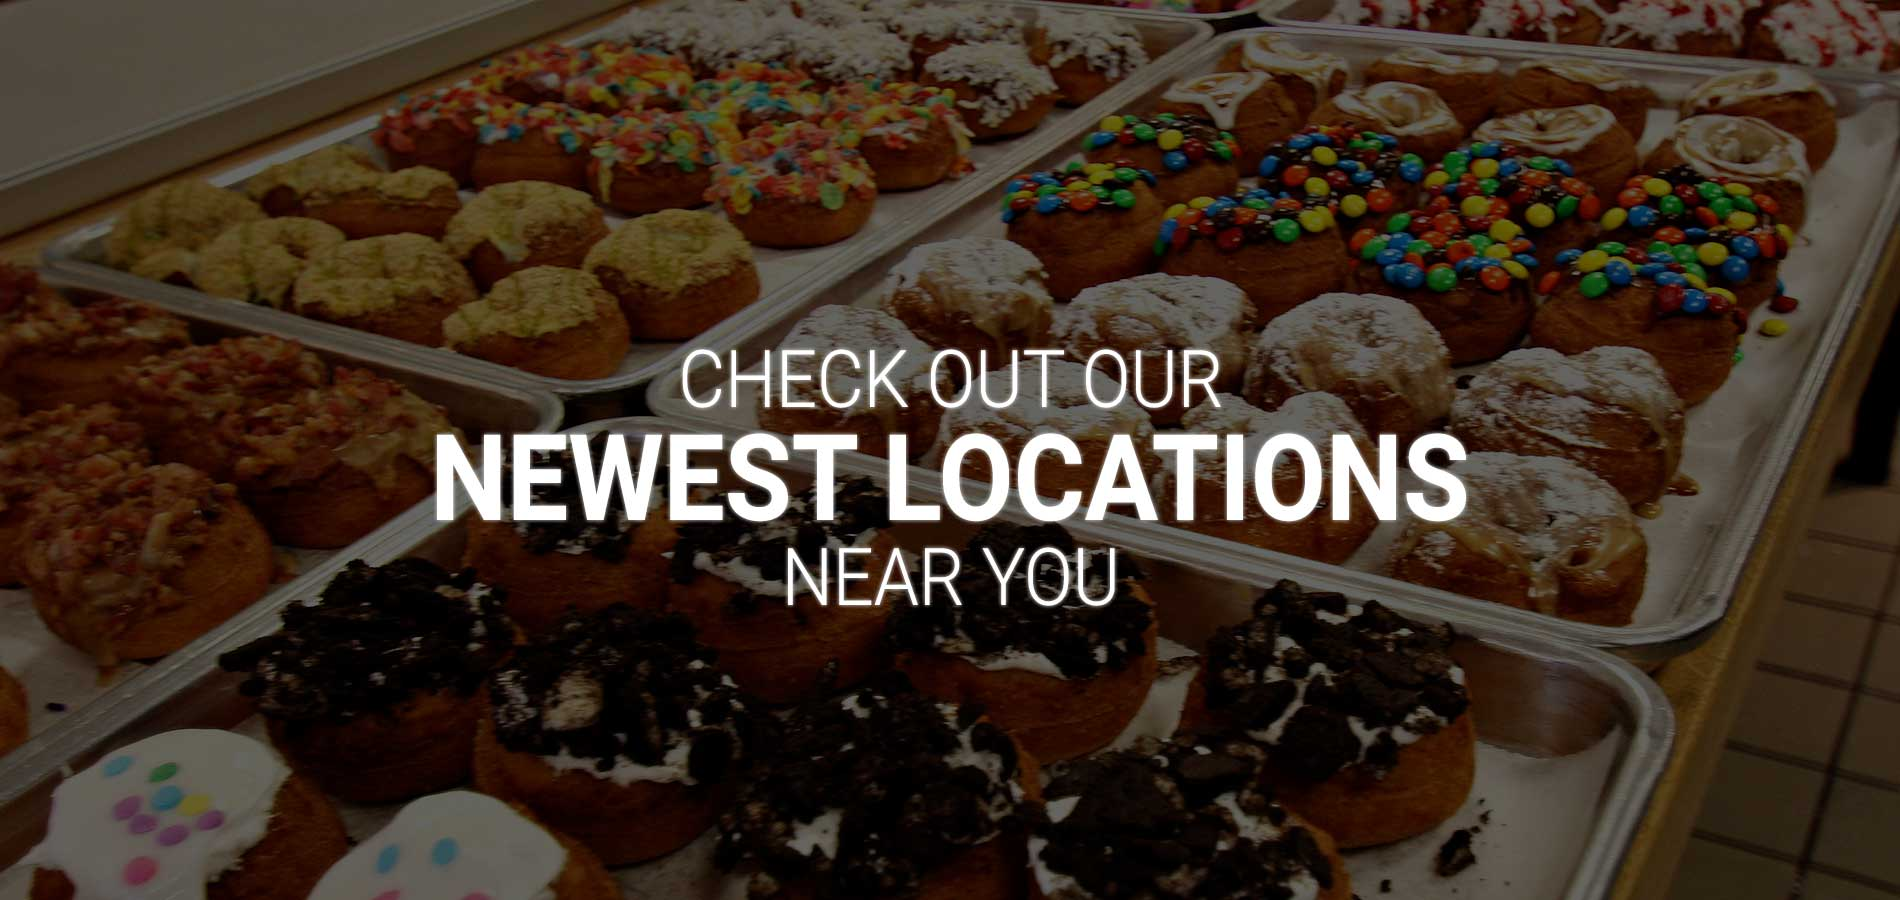 Check out our new locations near you